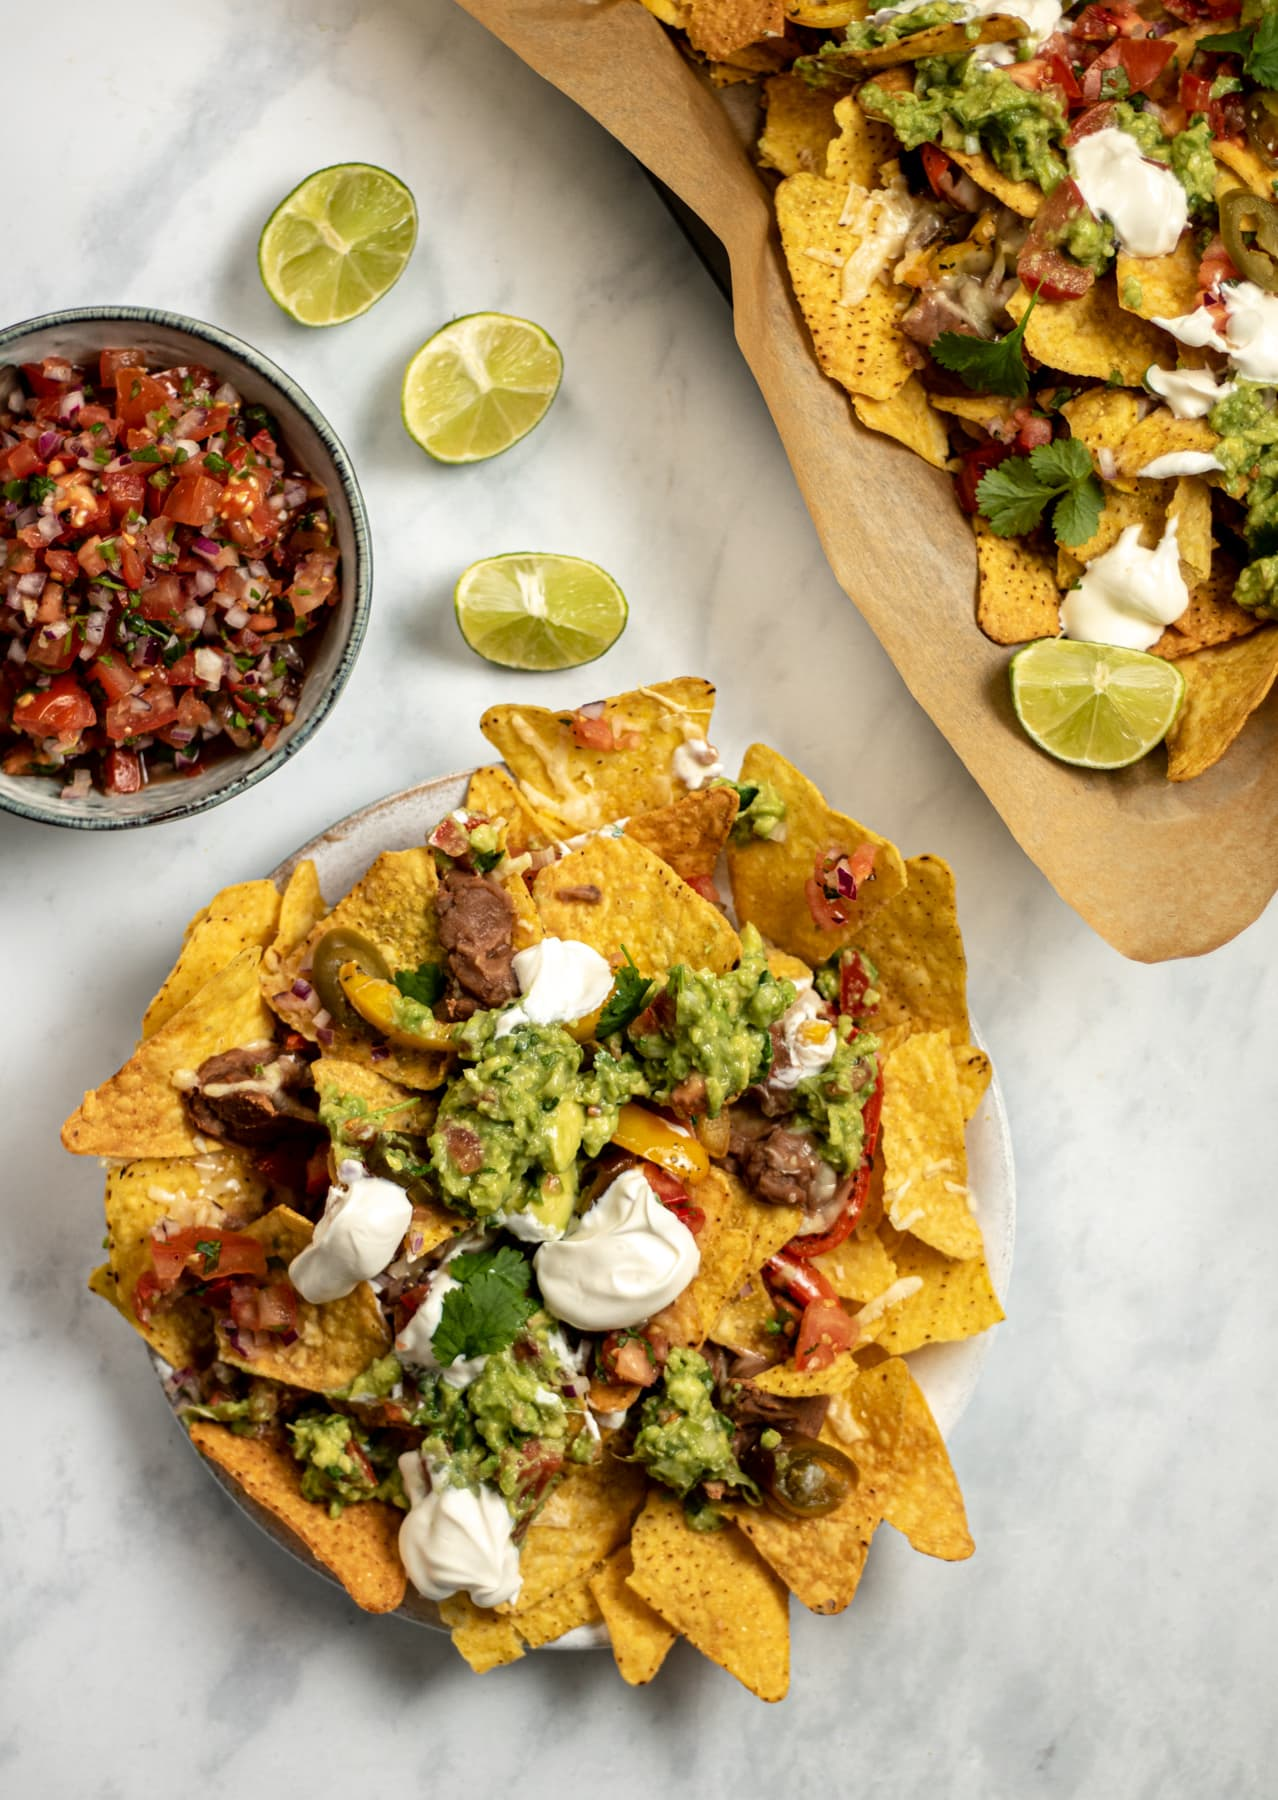 Nachos on a plate with lime wedges and a bowl of salsa beside them